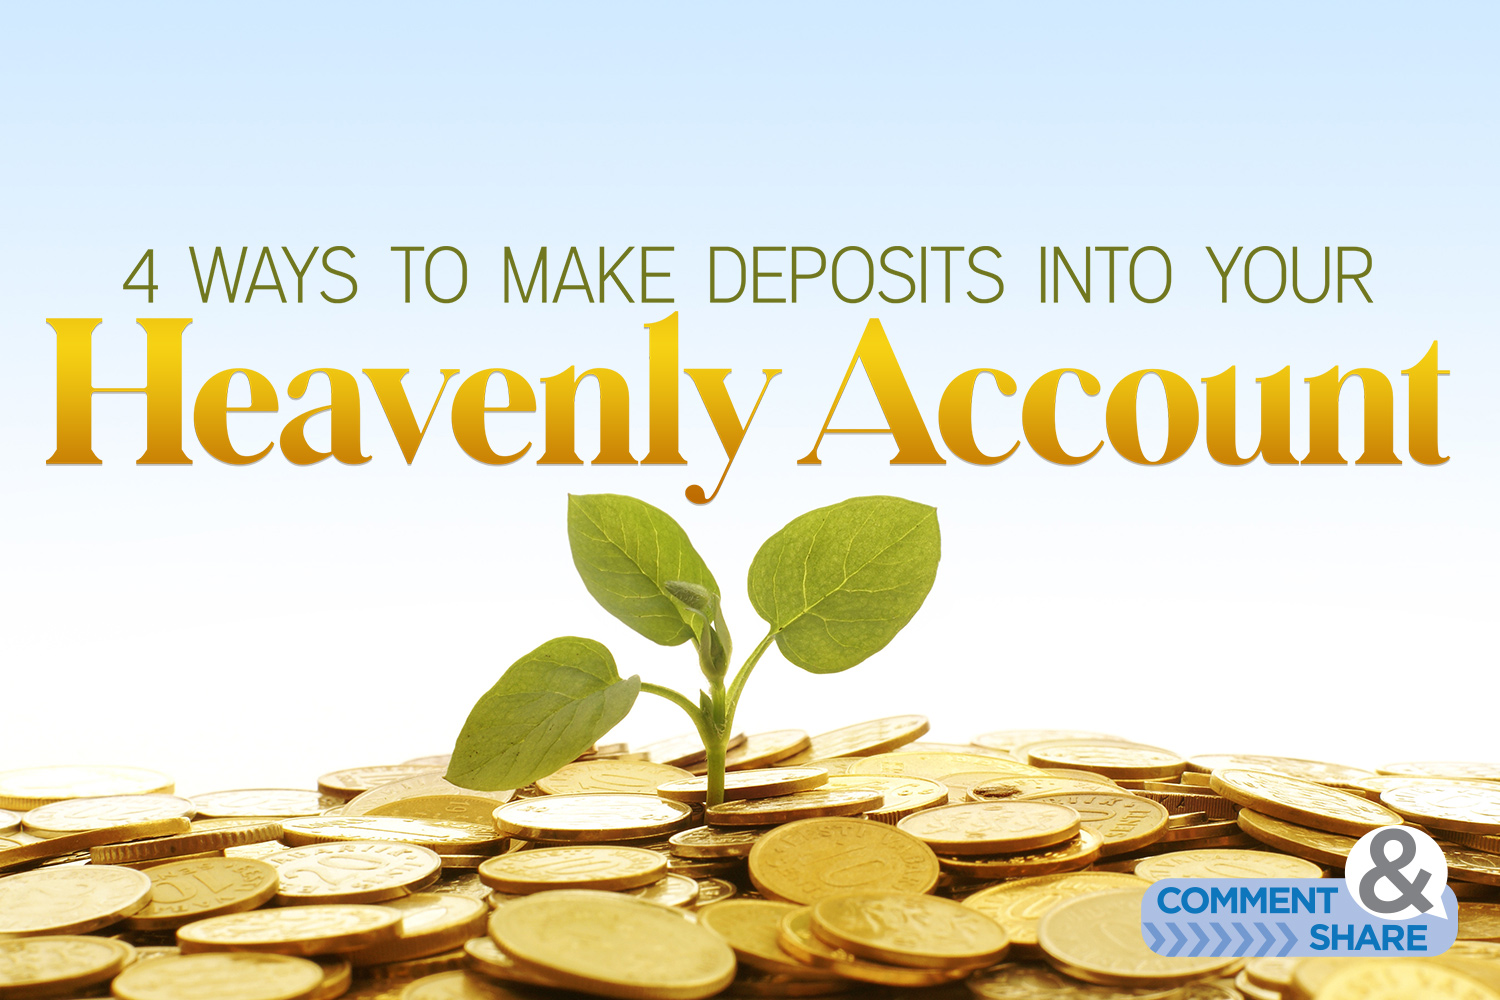 4 Ways to Make Deposits Into Your Heavenly Account